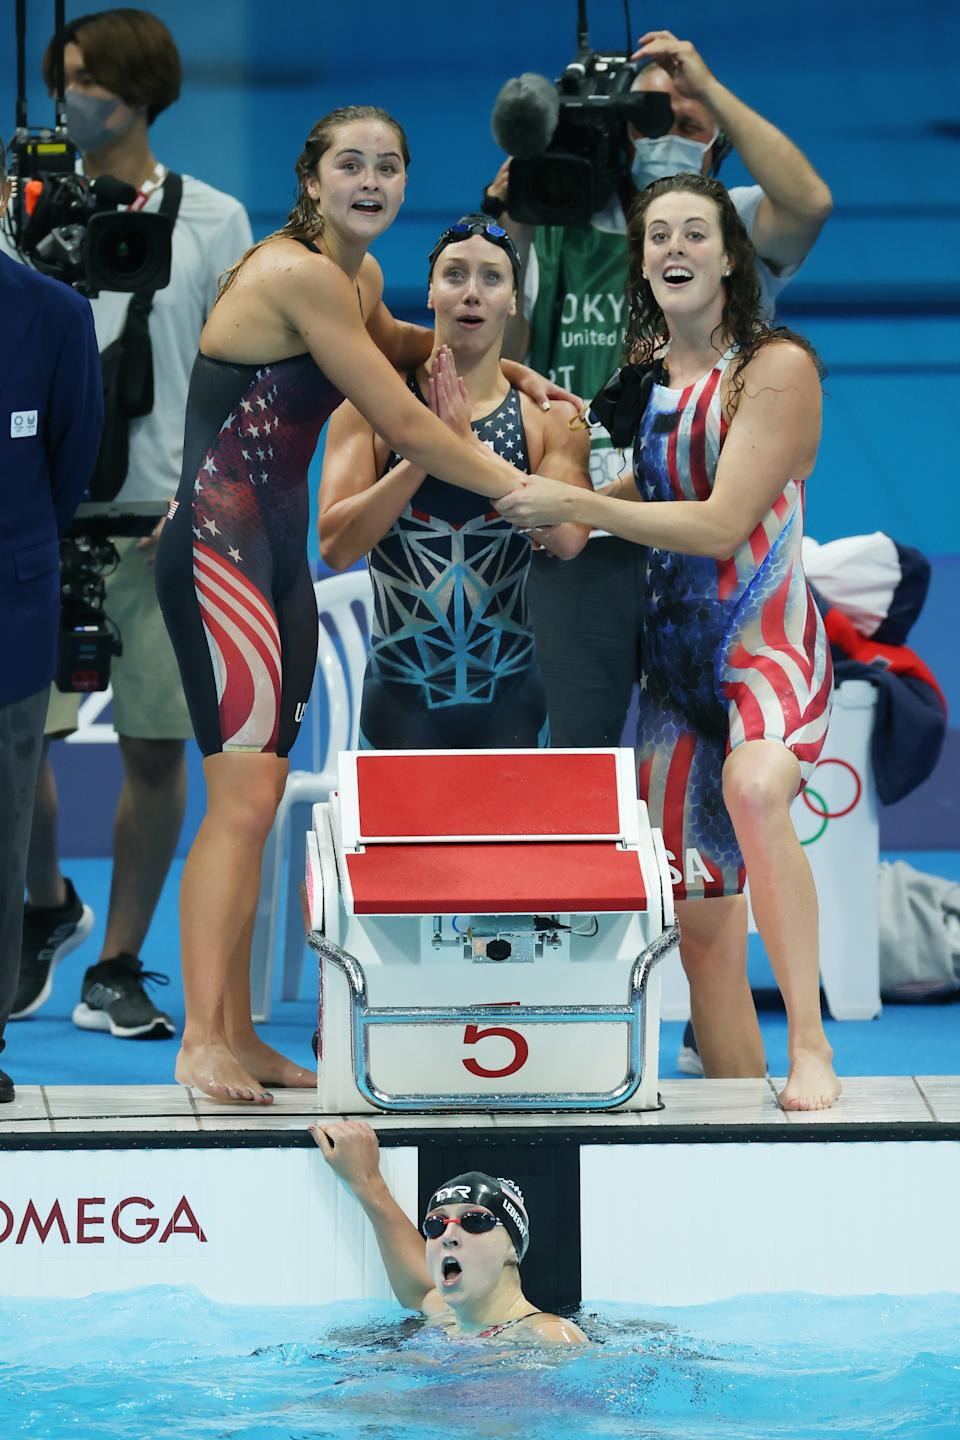 <p>TOKYO, JAPAN - JULY 29: Kathryn McLaughlin, Paige Madden, Allison Schmitt and Katie Ledecky of Team United States react after winning the silver medal in the Women's 4 x 200m Freestyle Relay Final on day six of the Tokyo 2020 Olympic Games at Tokyo Aquatics Centre on July 29, 2021 in Tokyo, Japan. (Photo by Alexander Hassenstein/Getty Images)</p>